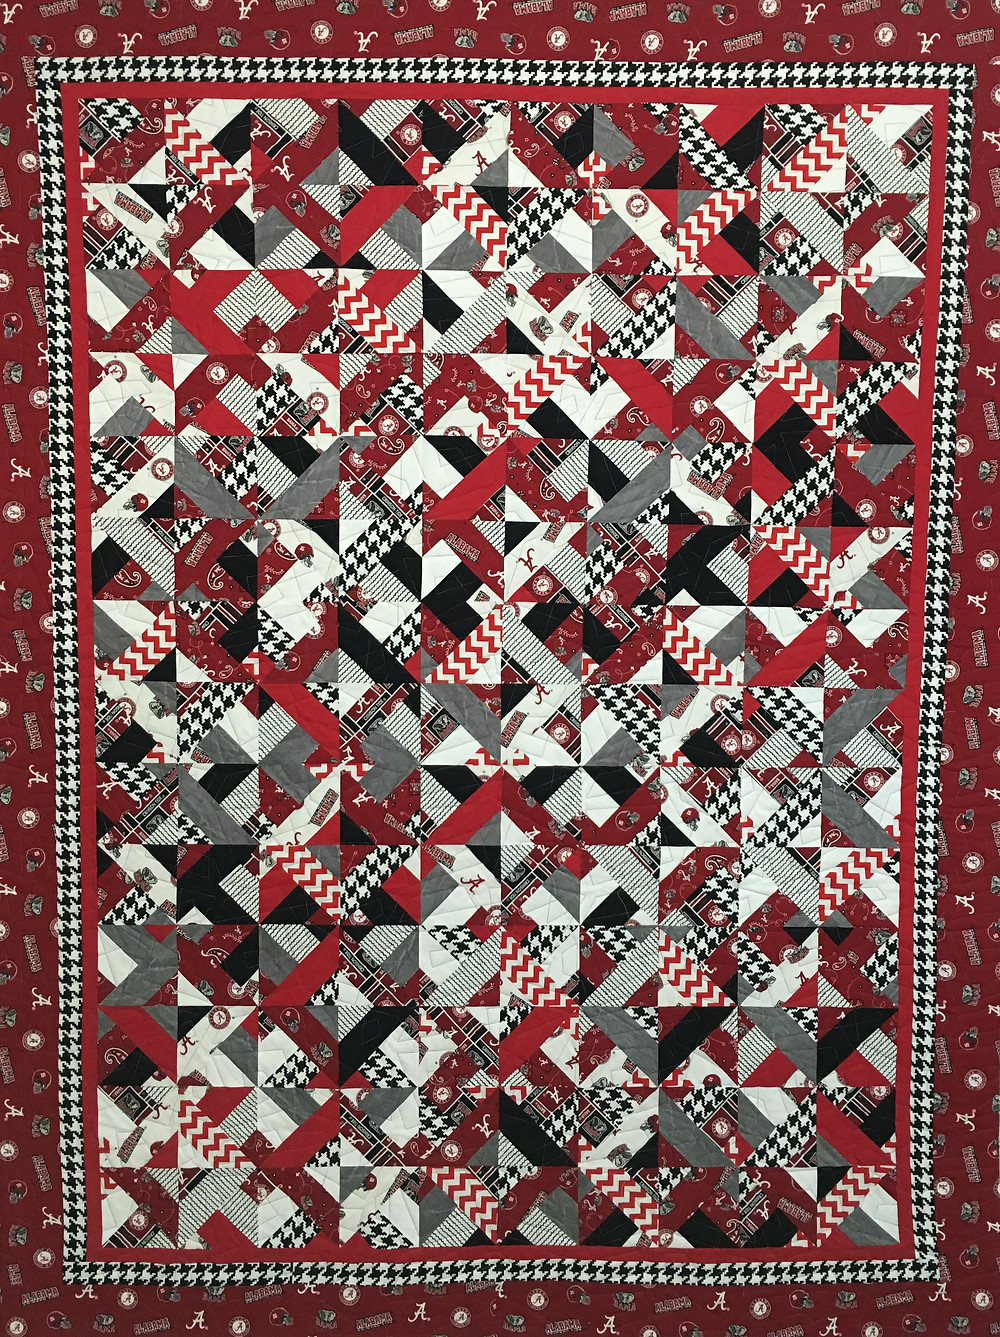 University of Alabama Quilt by Mary Derryberry